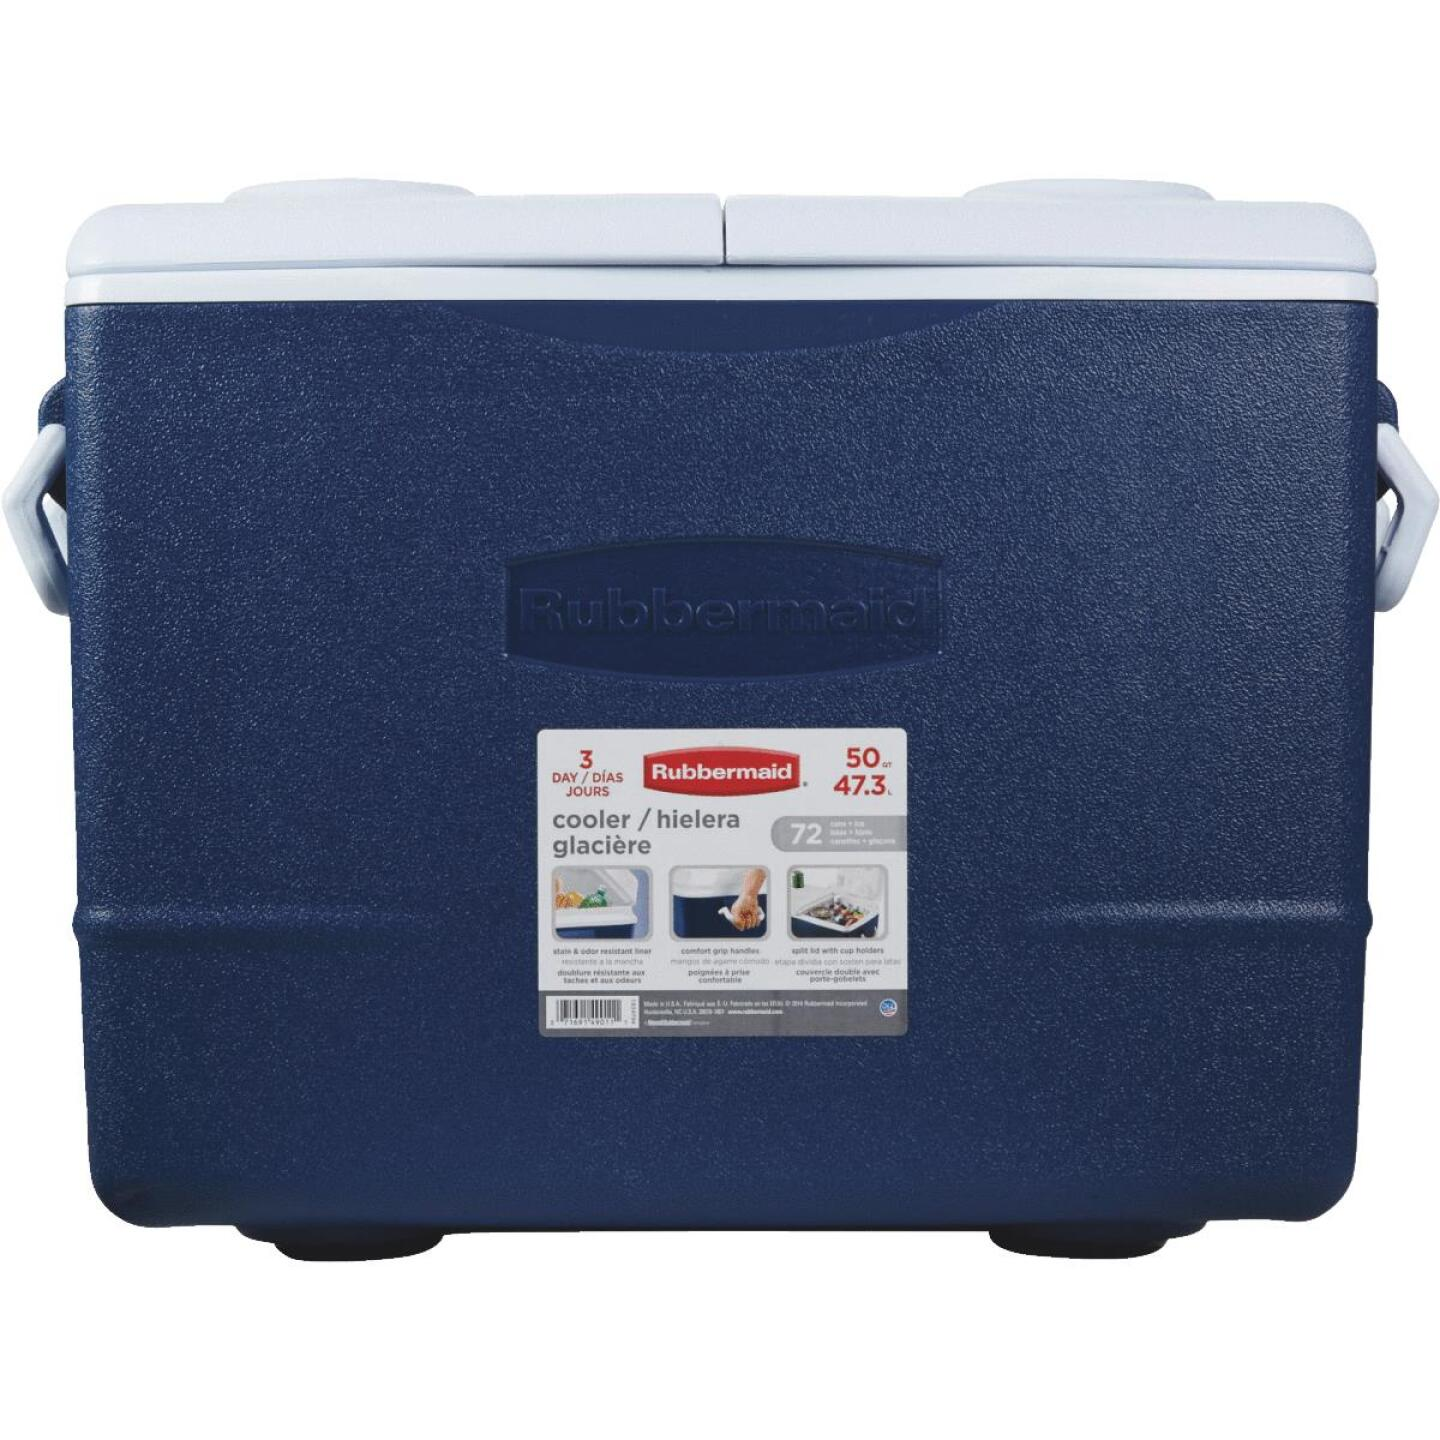 Rubbermaid 50 Qt. Cooler, Blue Image 2